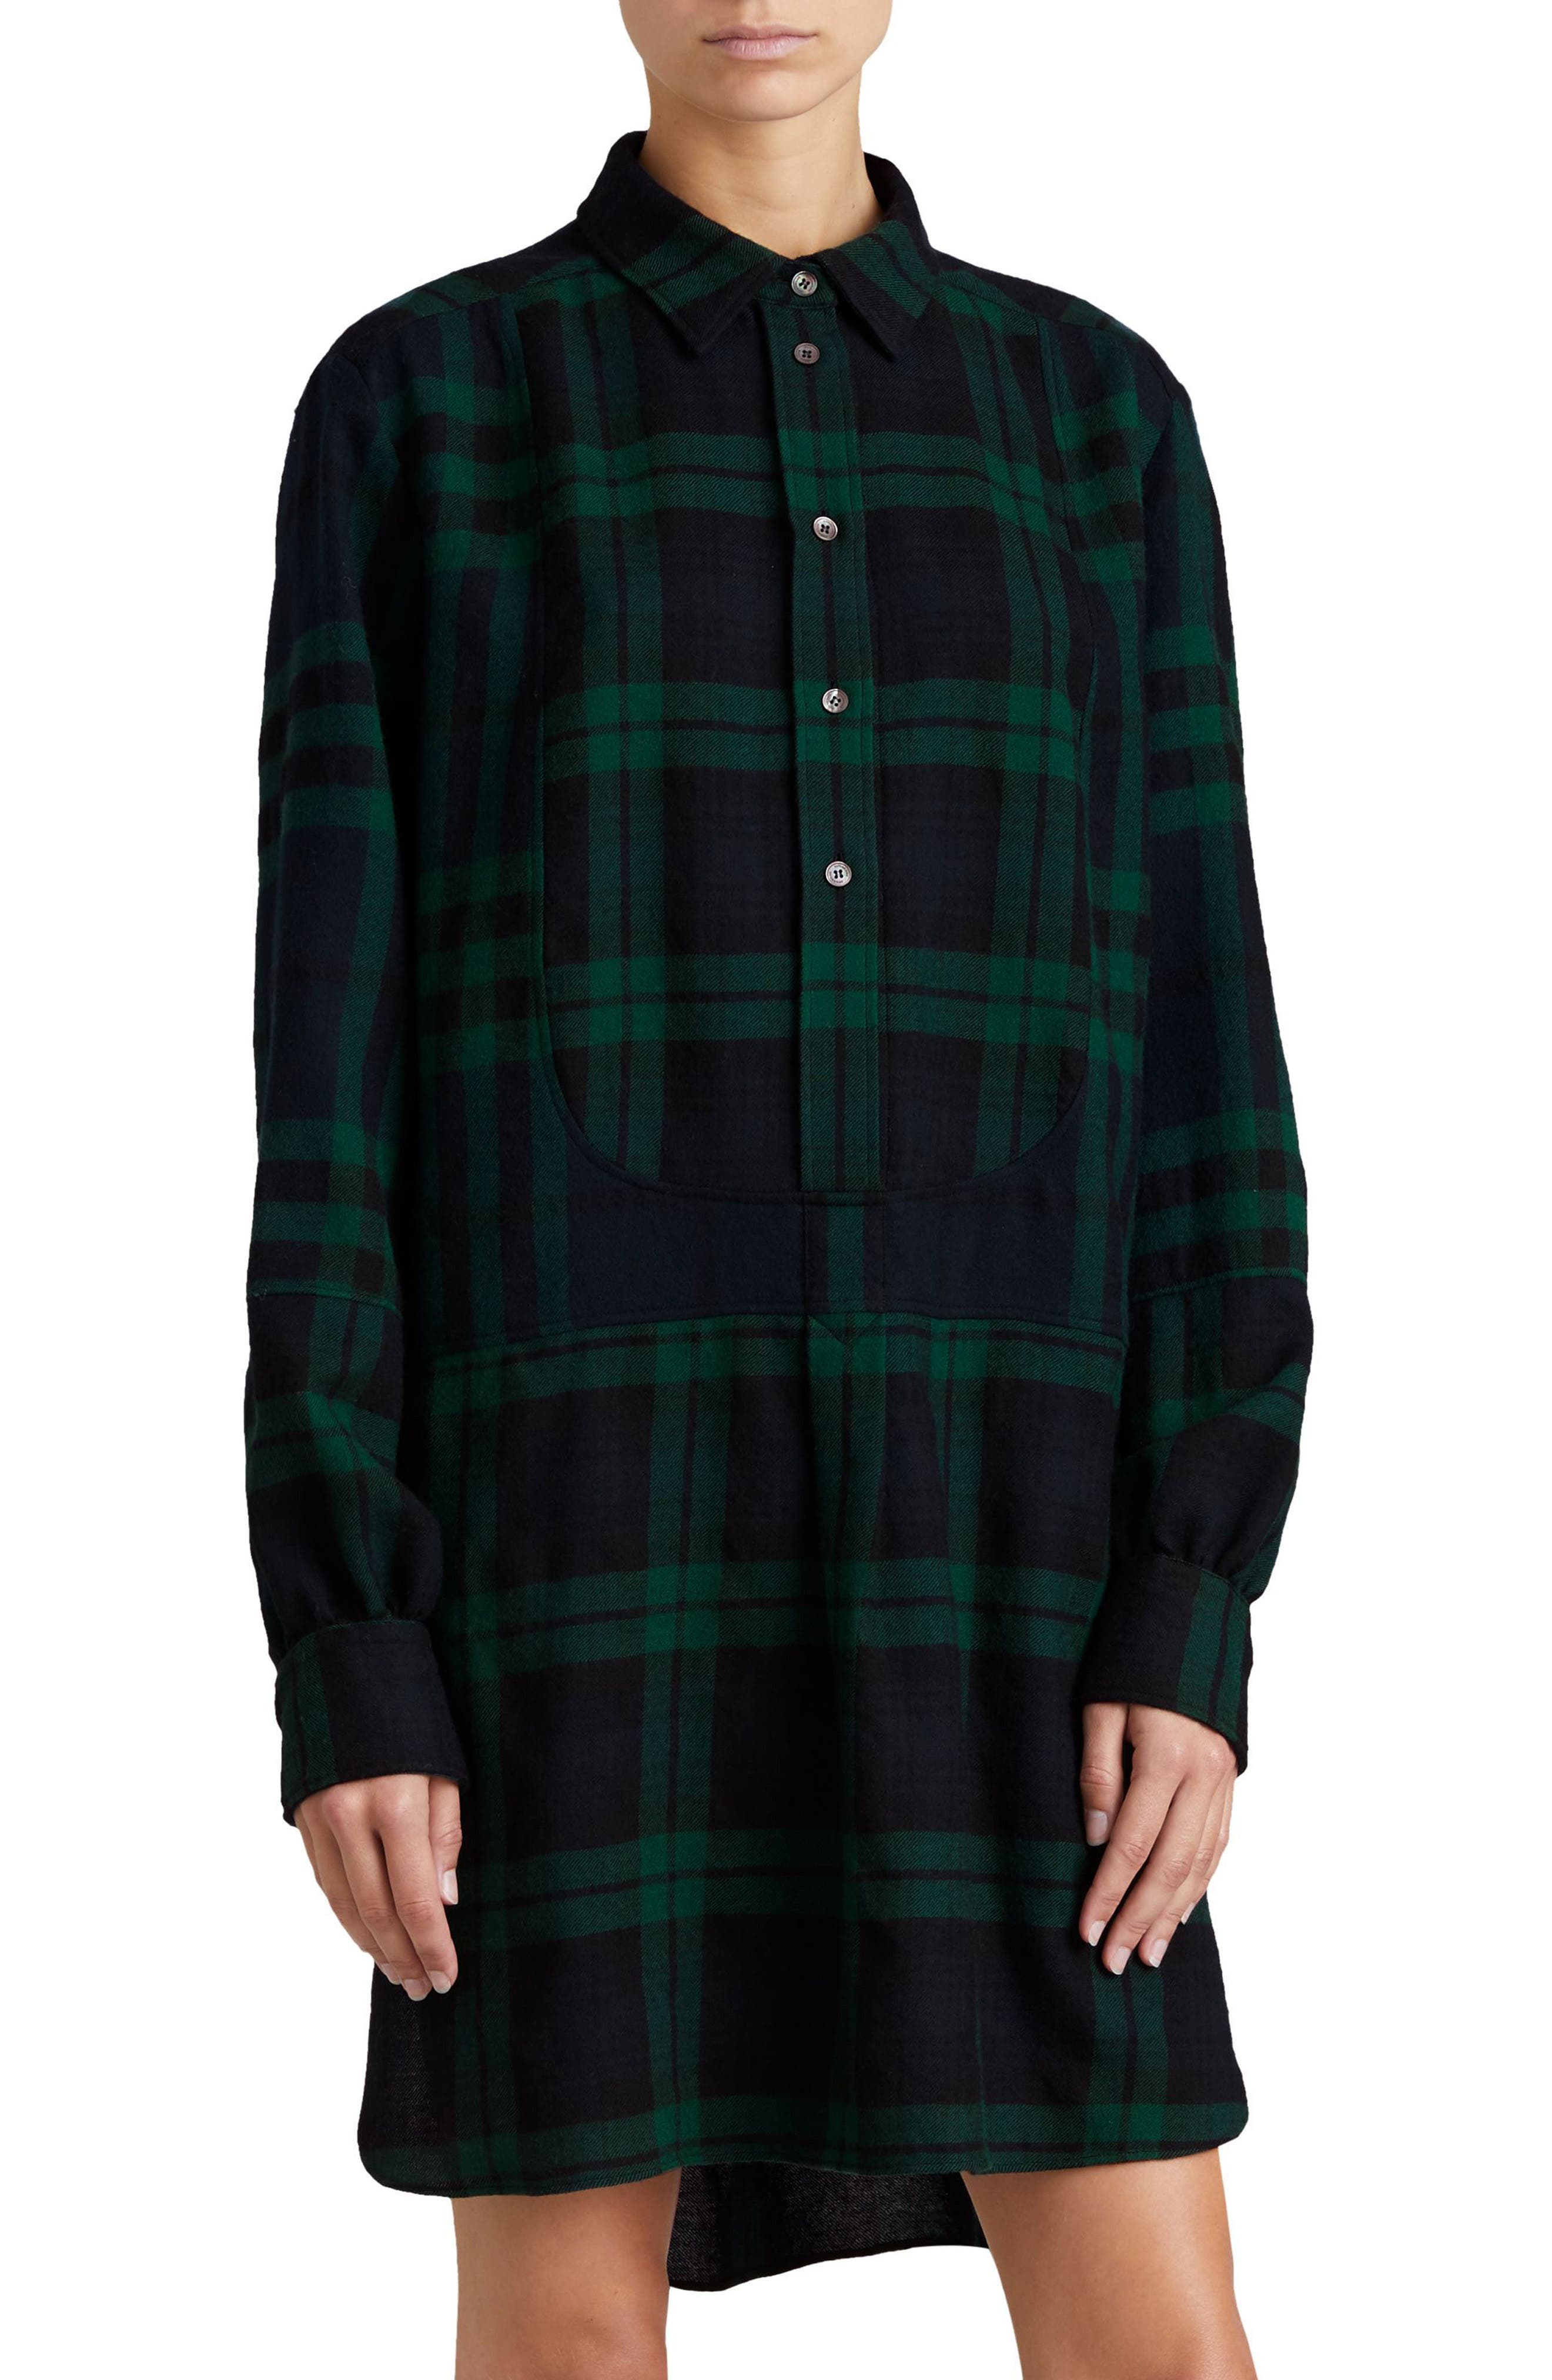 BURBERRY,                             Kylie Check Wool Shirtdress,                             Alternate thumbnail 5, color,                             410